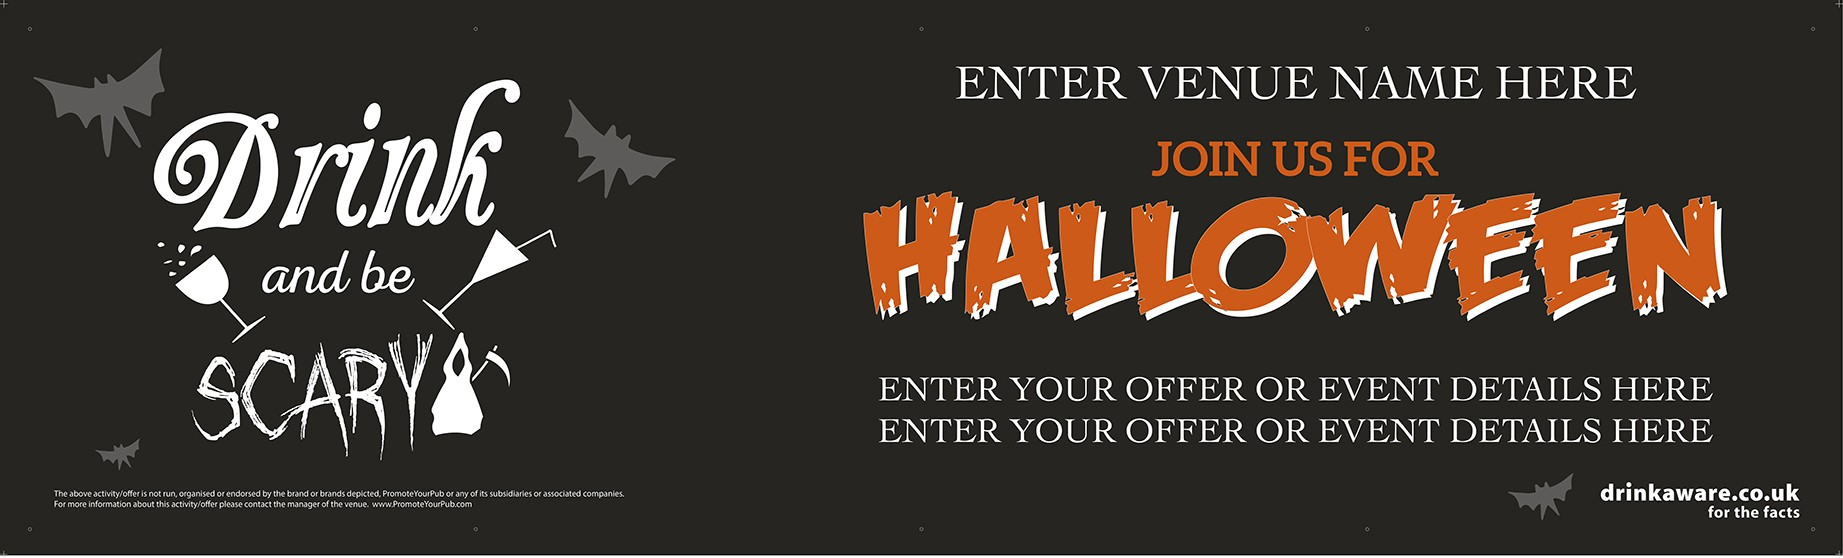 Halloween Drink and be Scary Banner